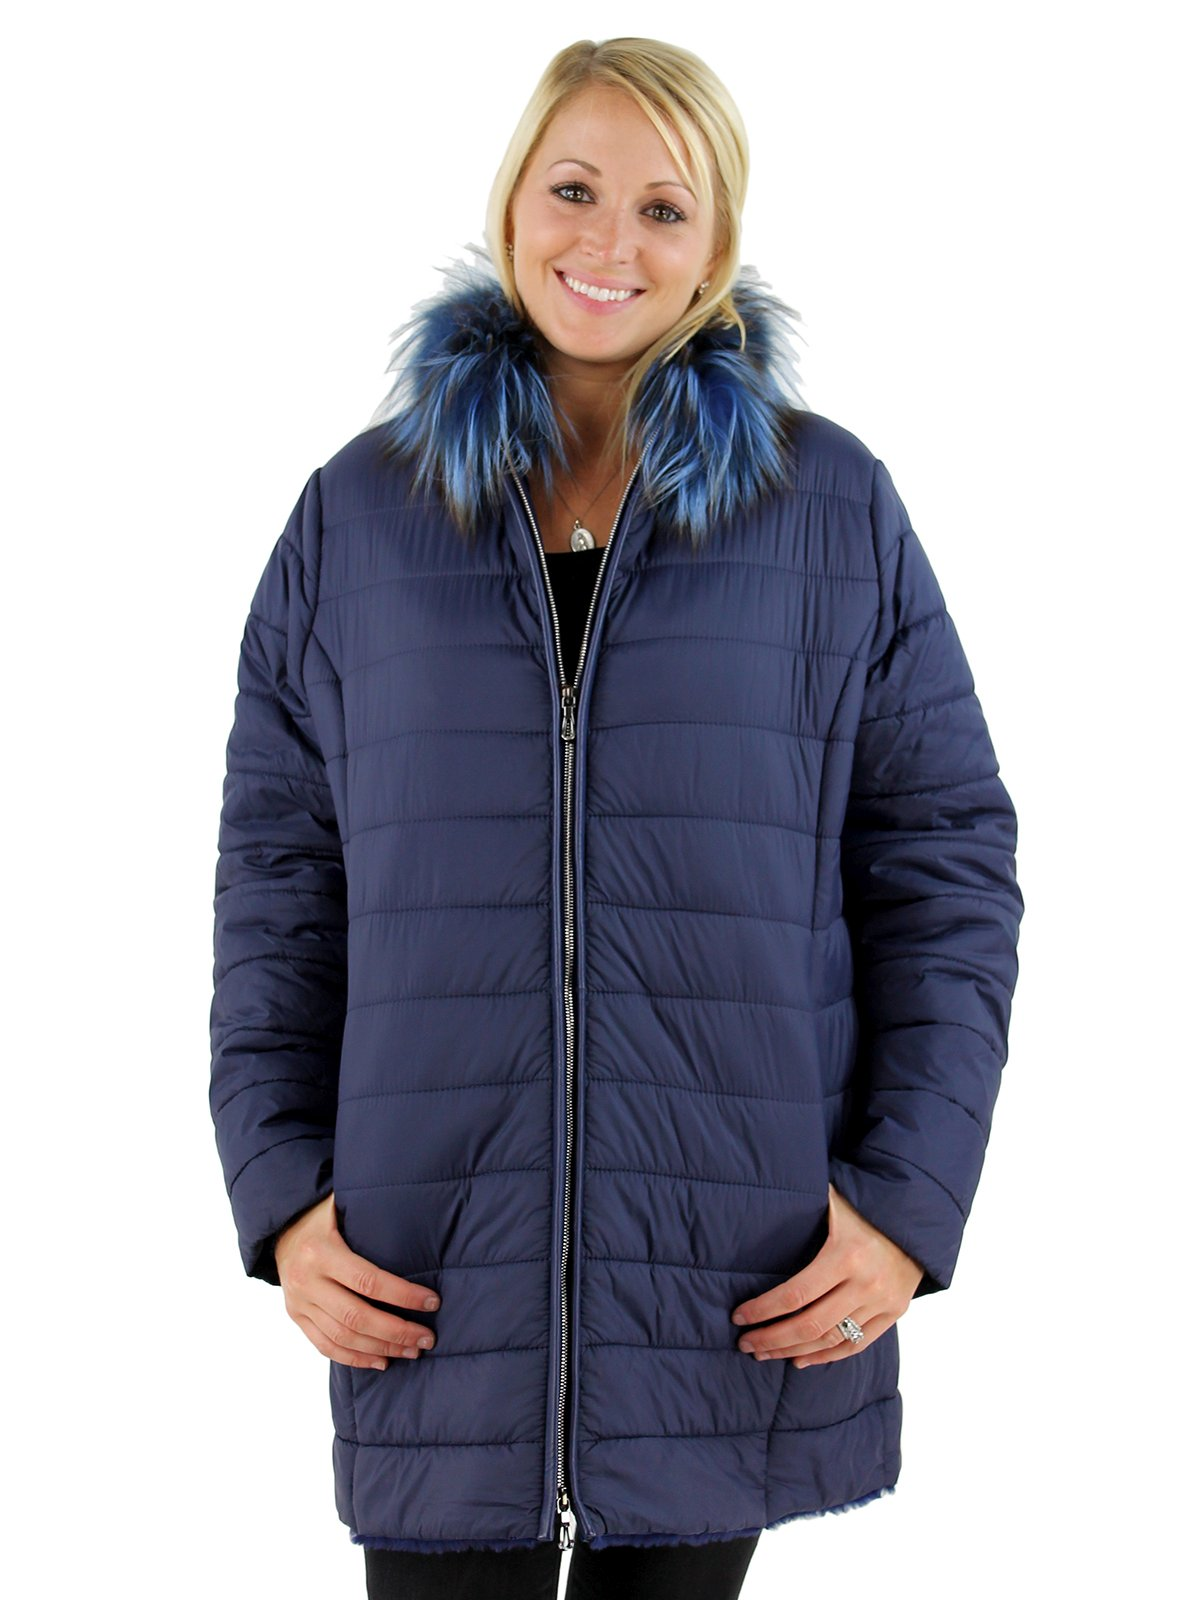 Woman's Navy Fabric and Shearling Lamb Jacket